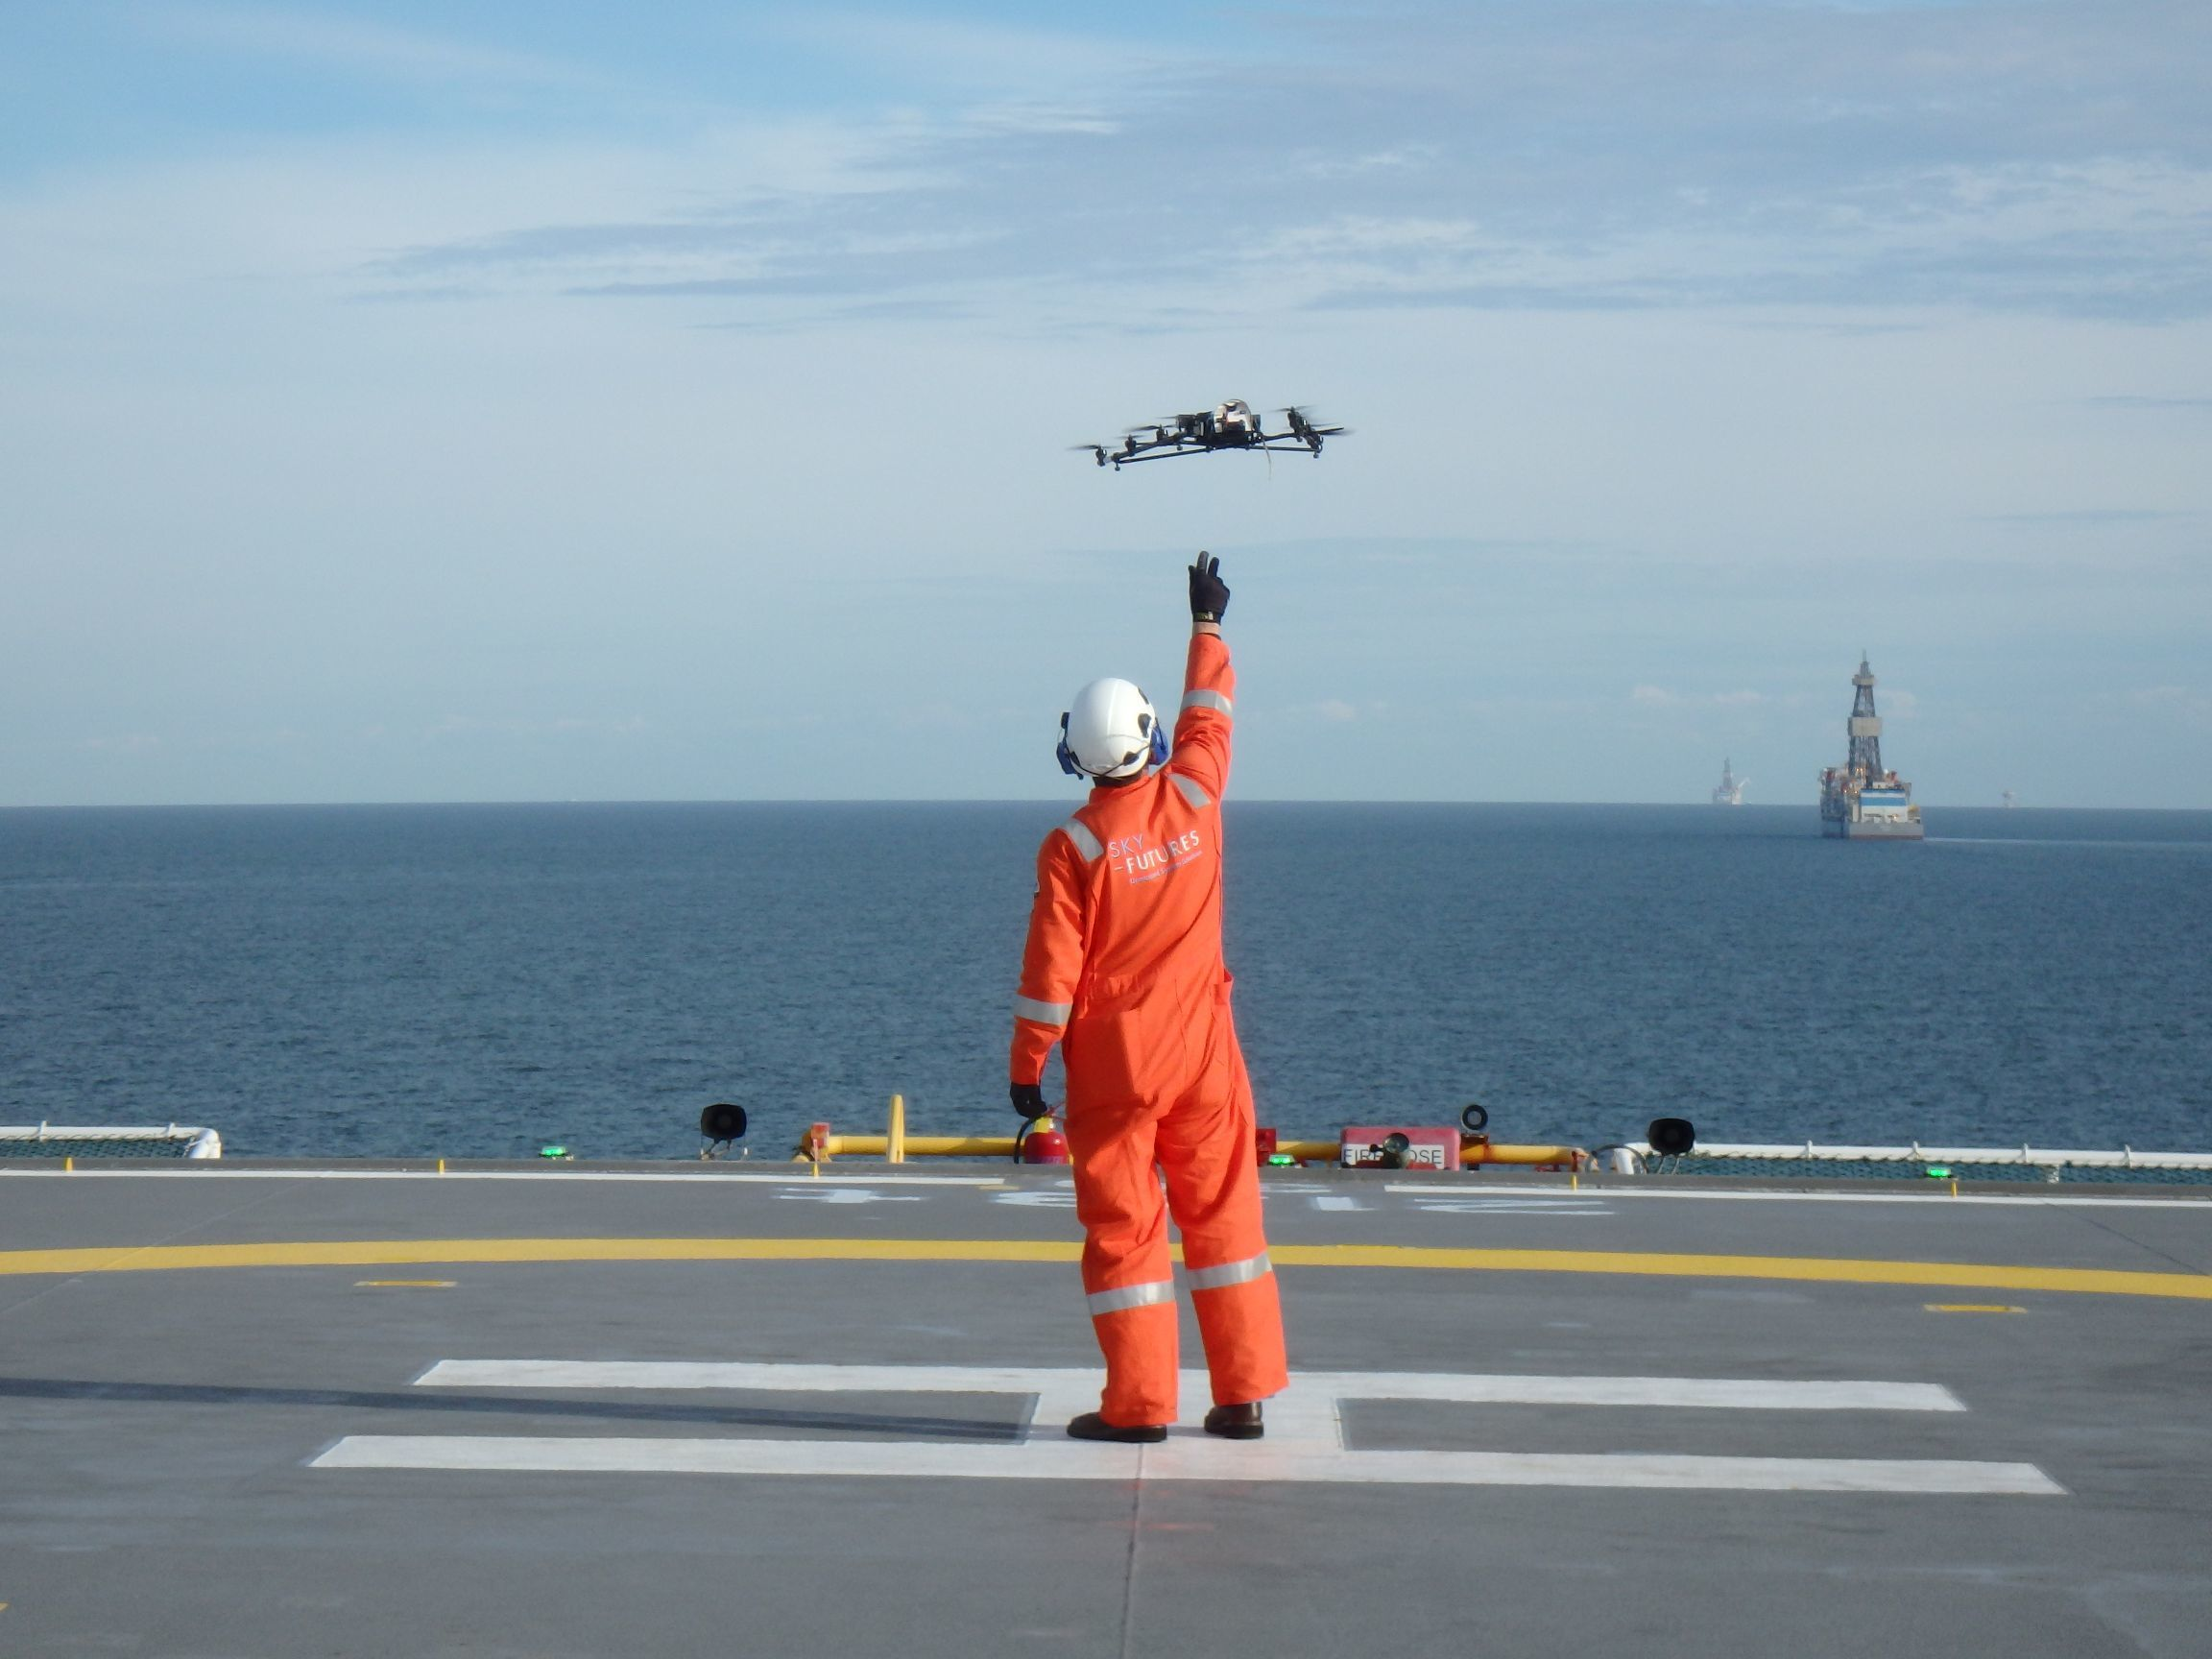 Sky-Futures uses drones to inspect oil and gas platforms.